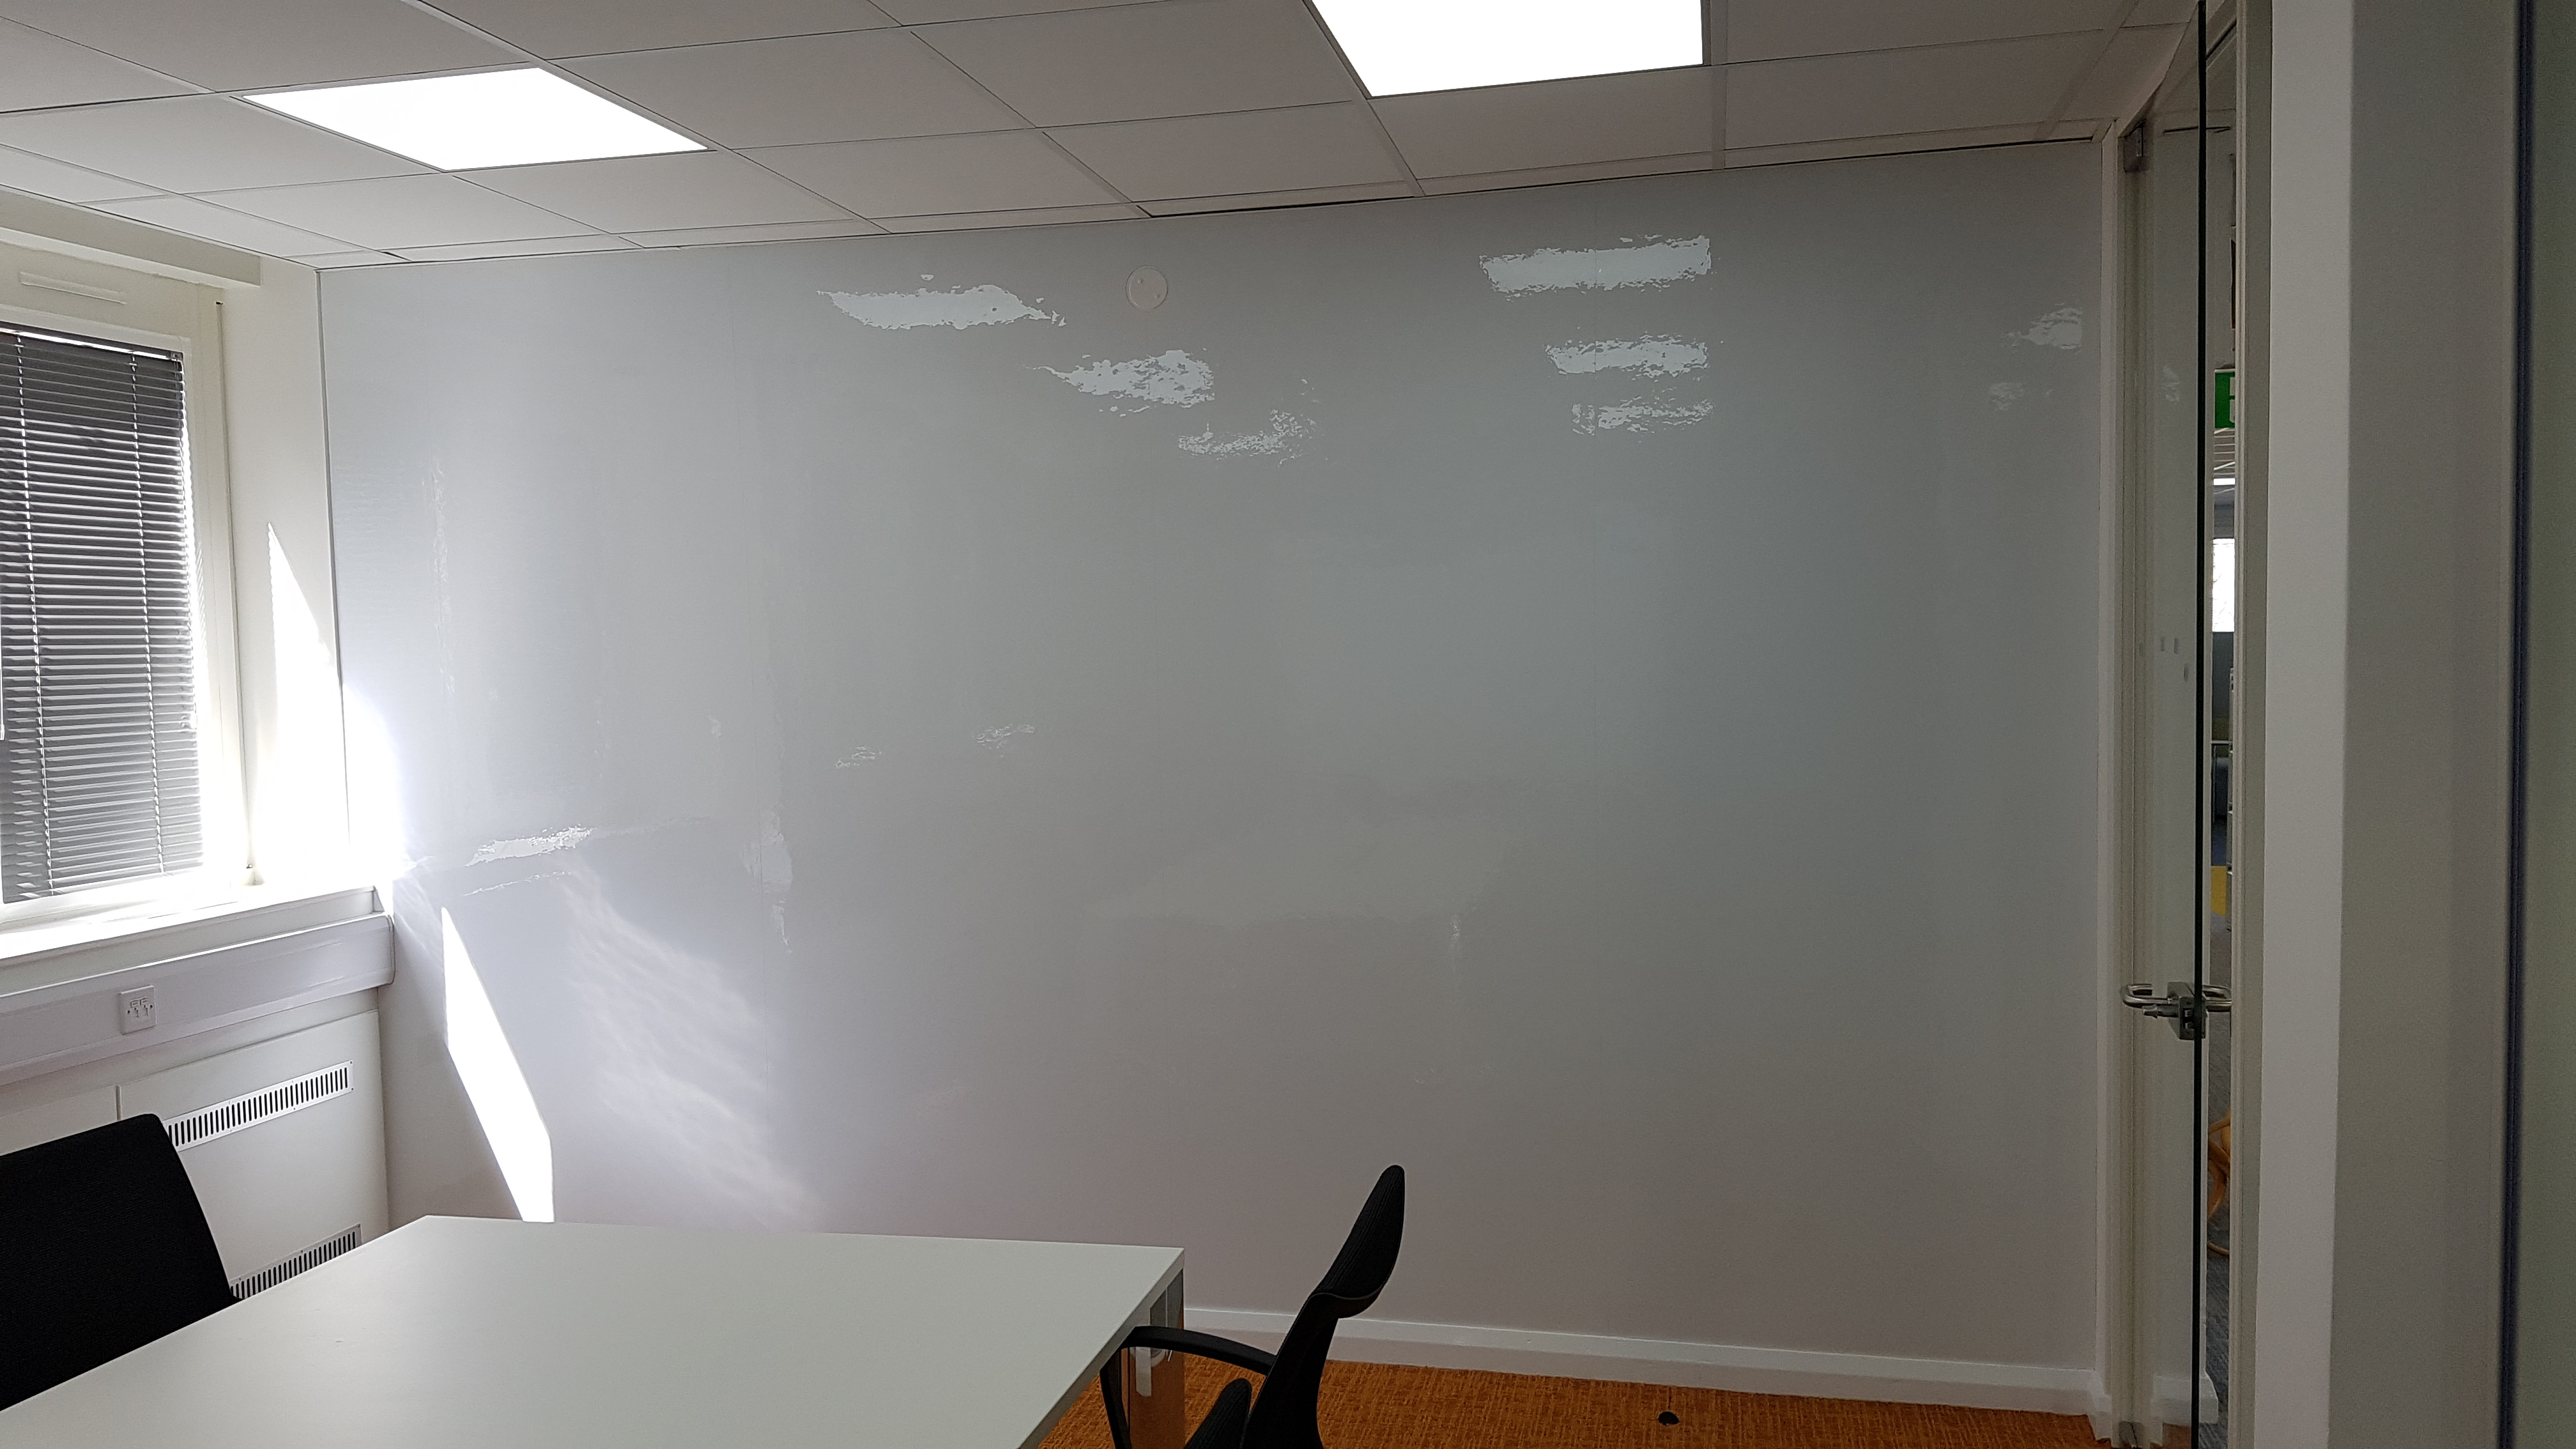 How To Turn A Wall Into A Whiteboard Magnetic Walls From Abel Magnets Abel Magnets